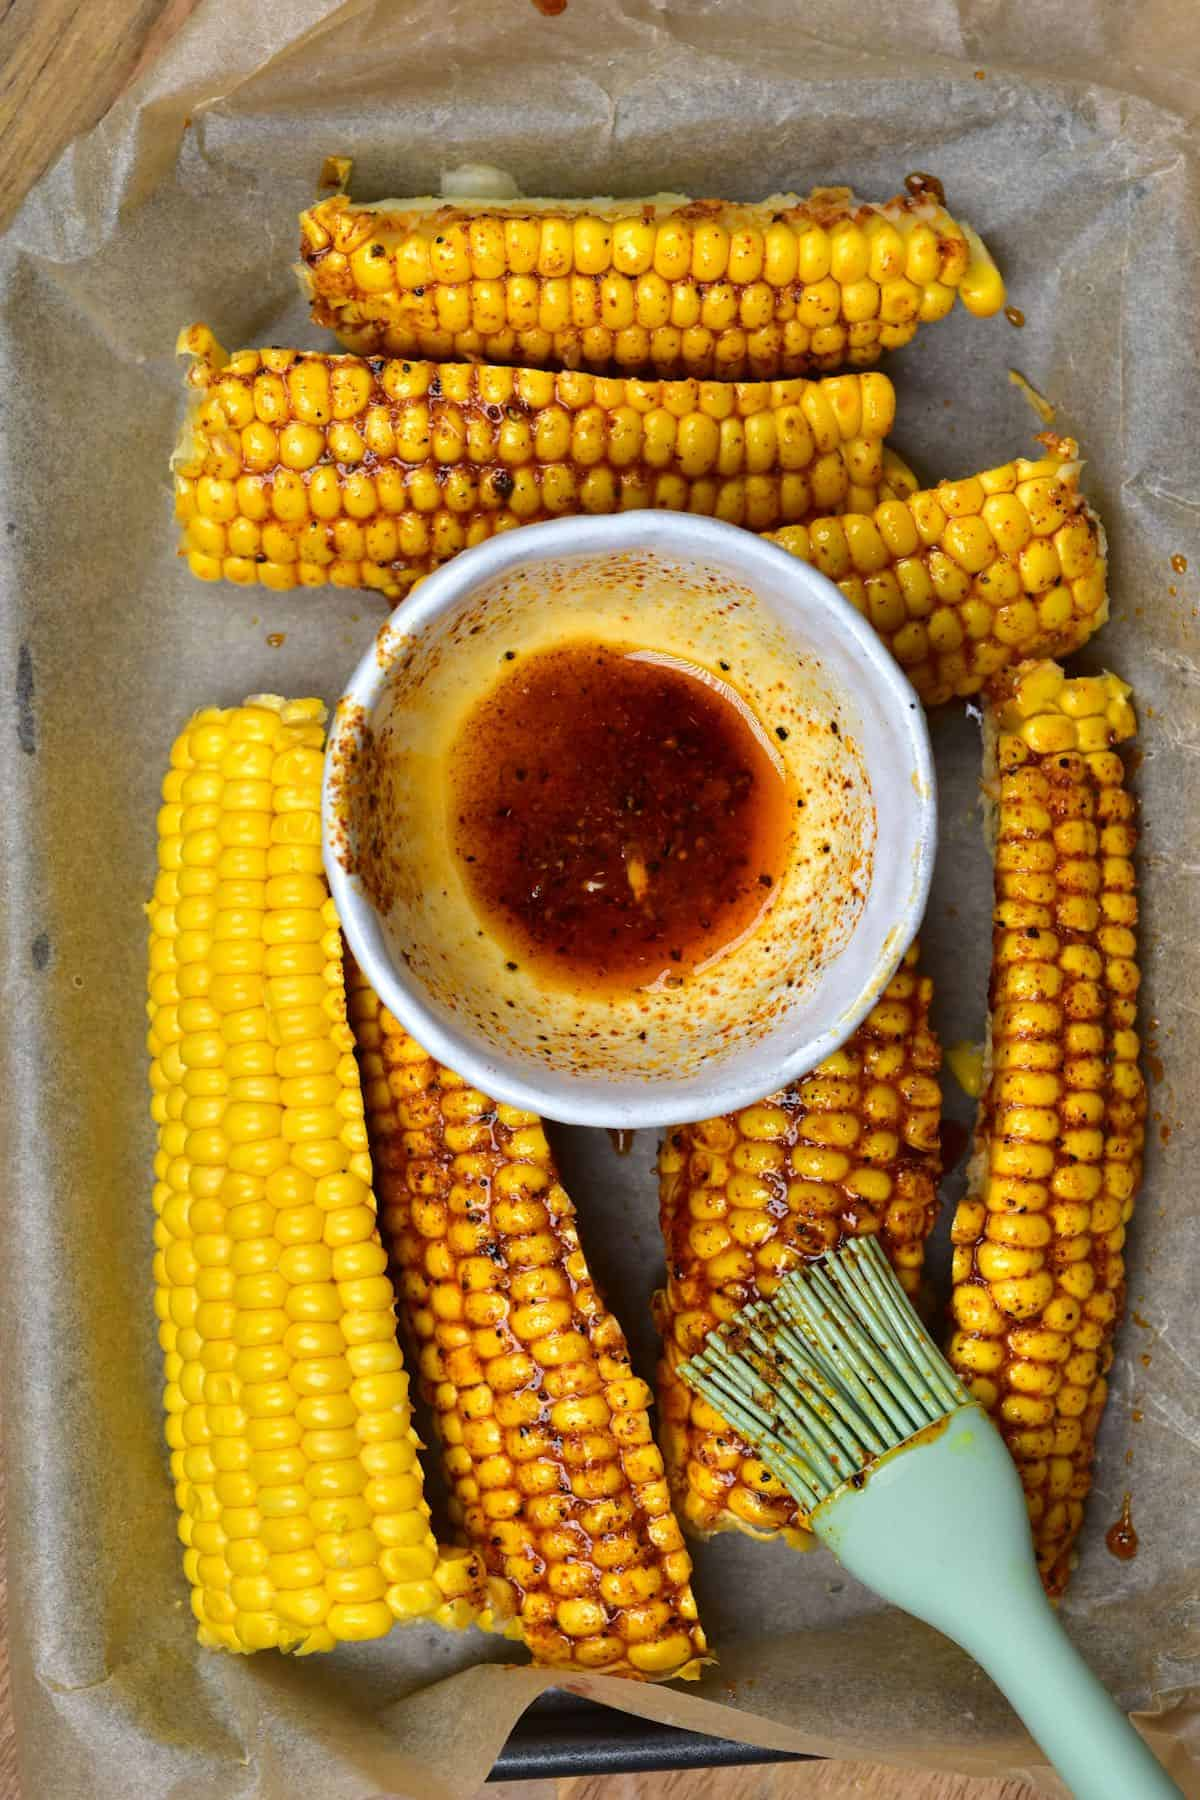 Brushing oil on corn in a baking tray